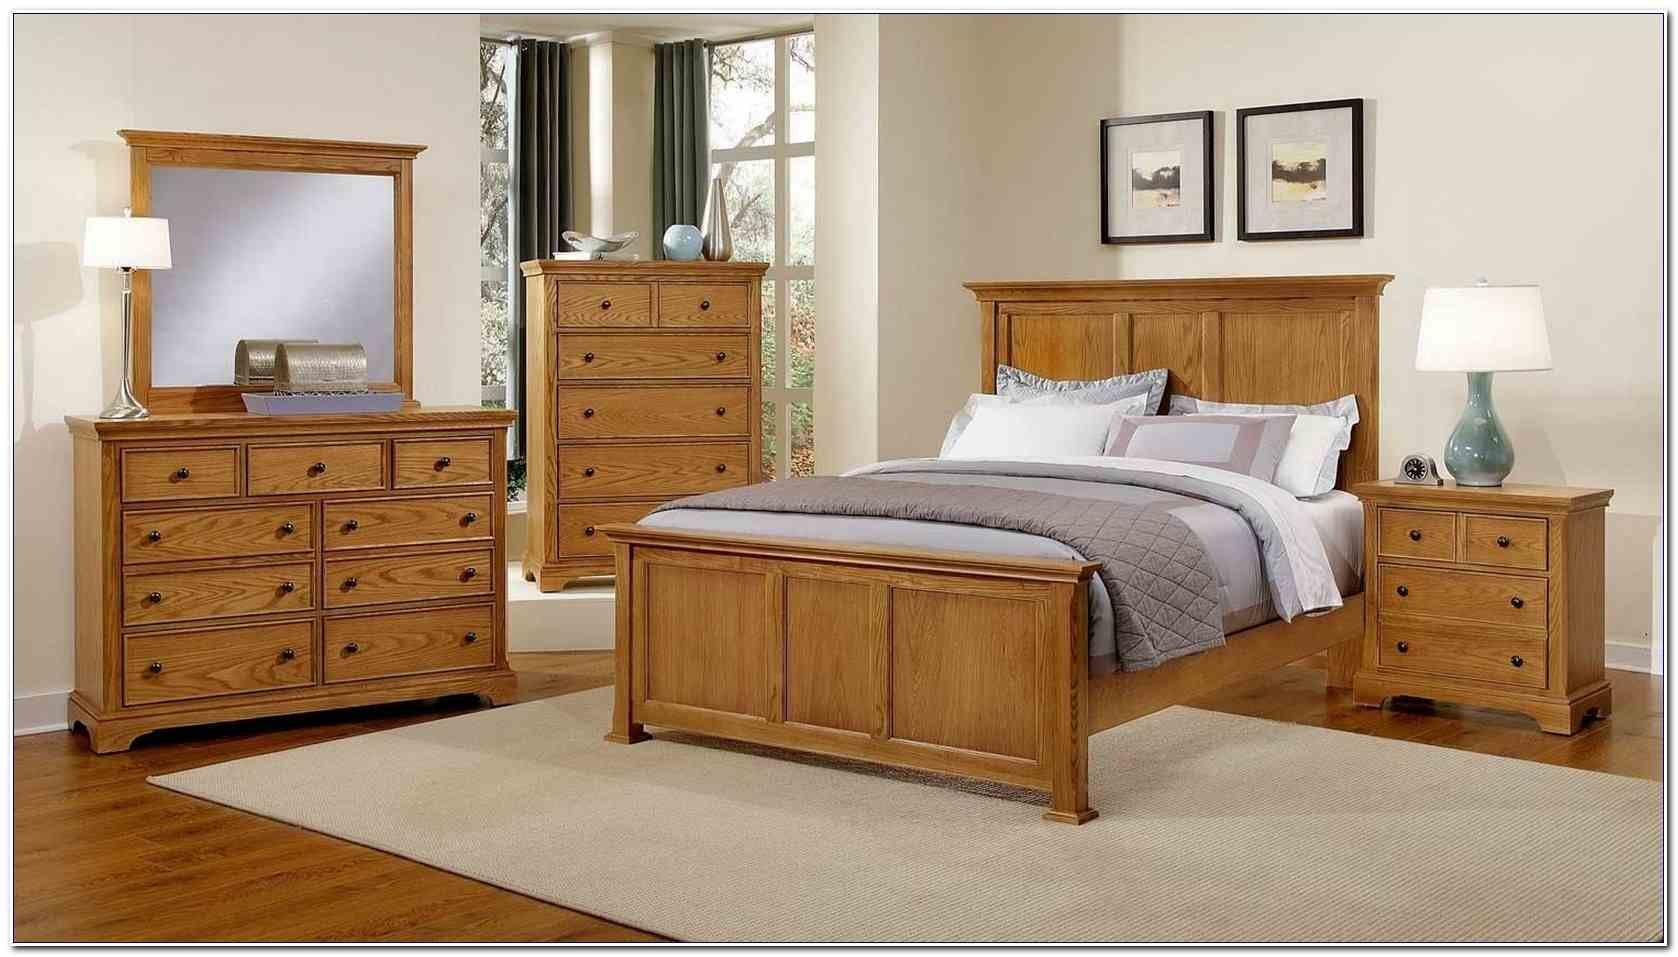 Best White Oak Bedroom Furniture Sets – Bedroom Ideas With Pictures